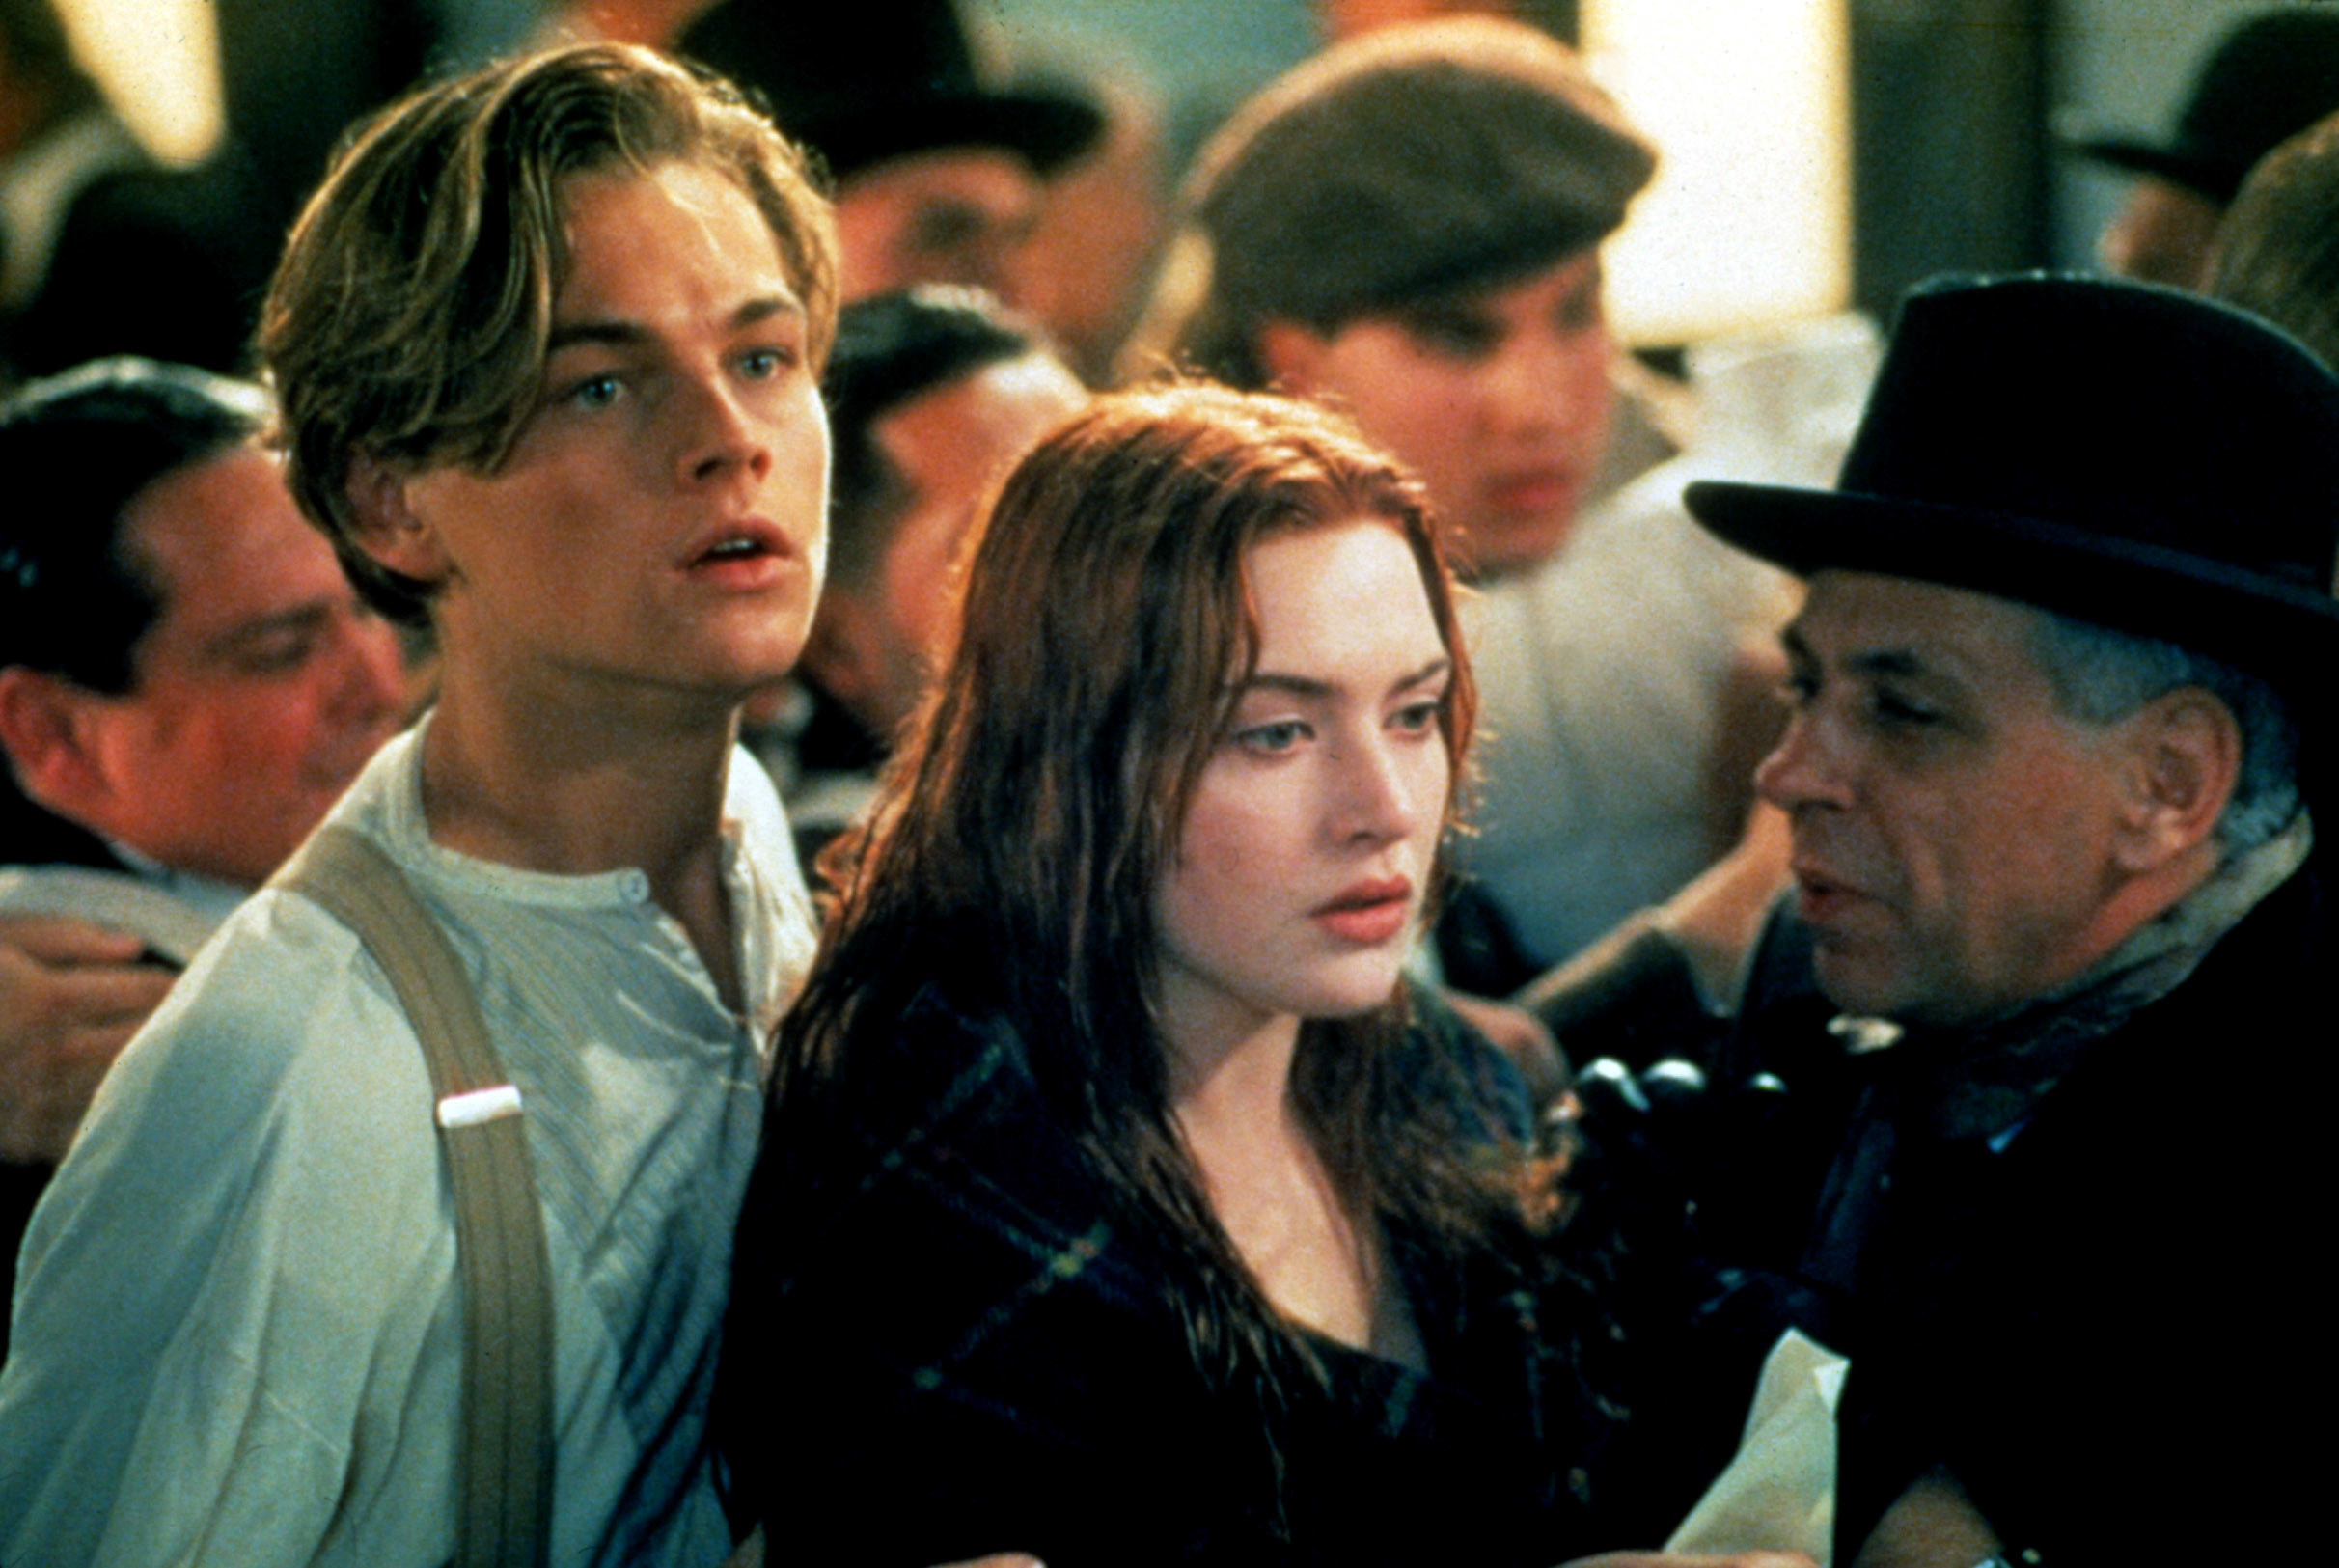 Leonardo DiCaprio and Kate Winslet in line for the lifeboats in the film Titanic